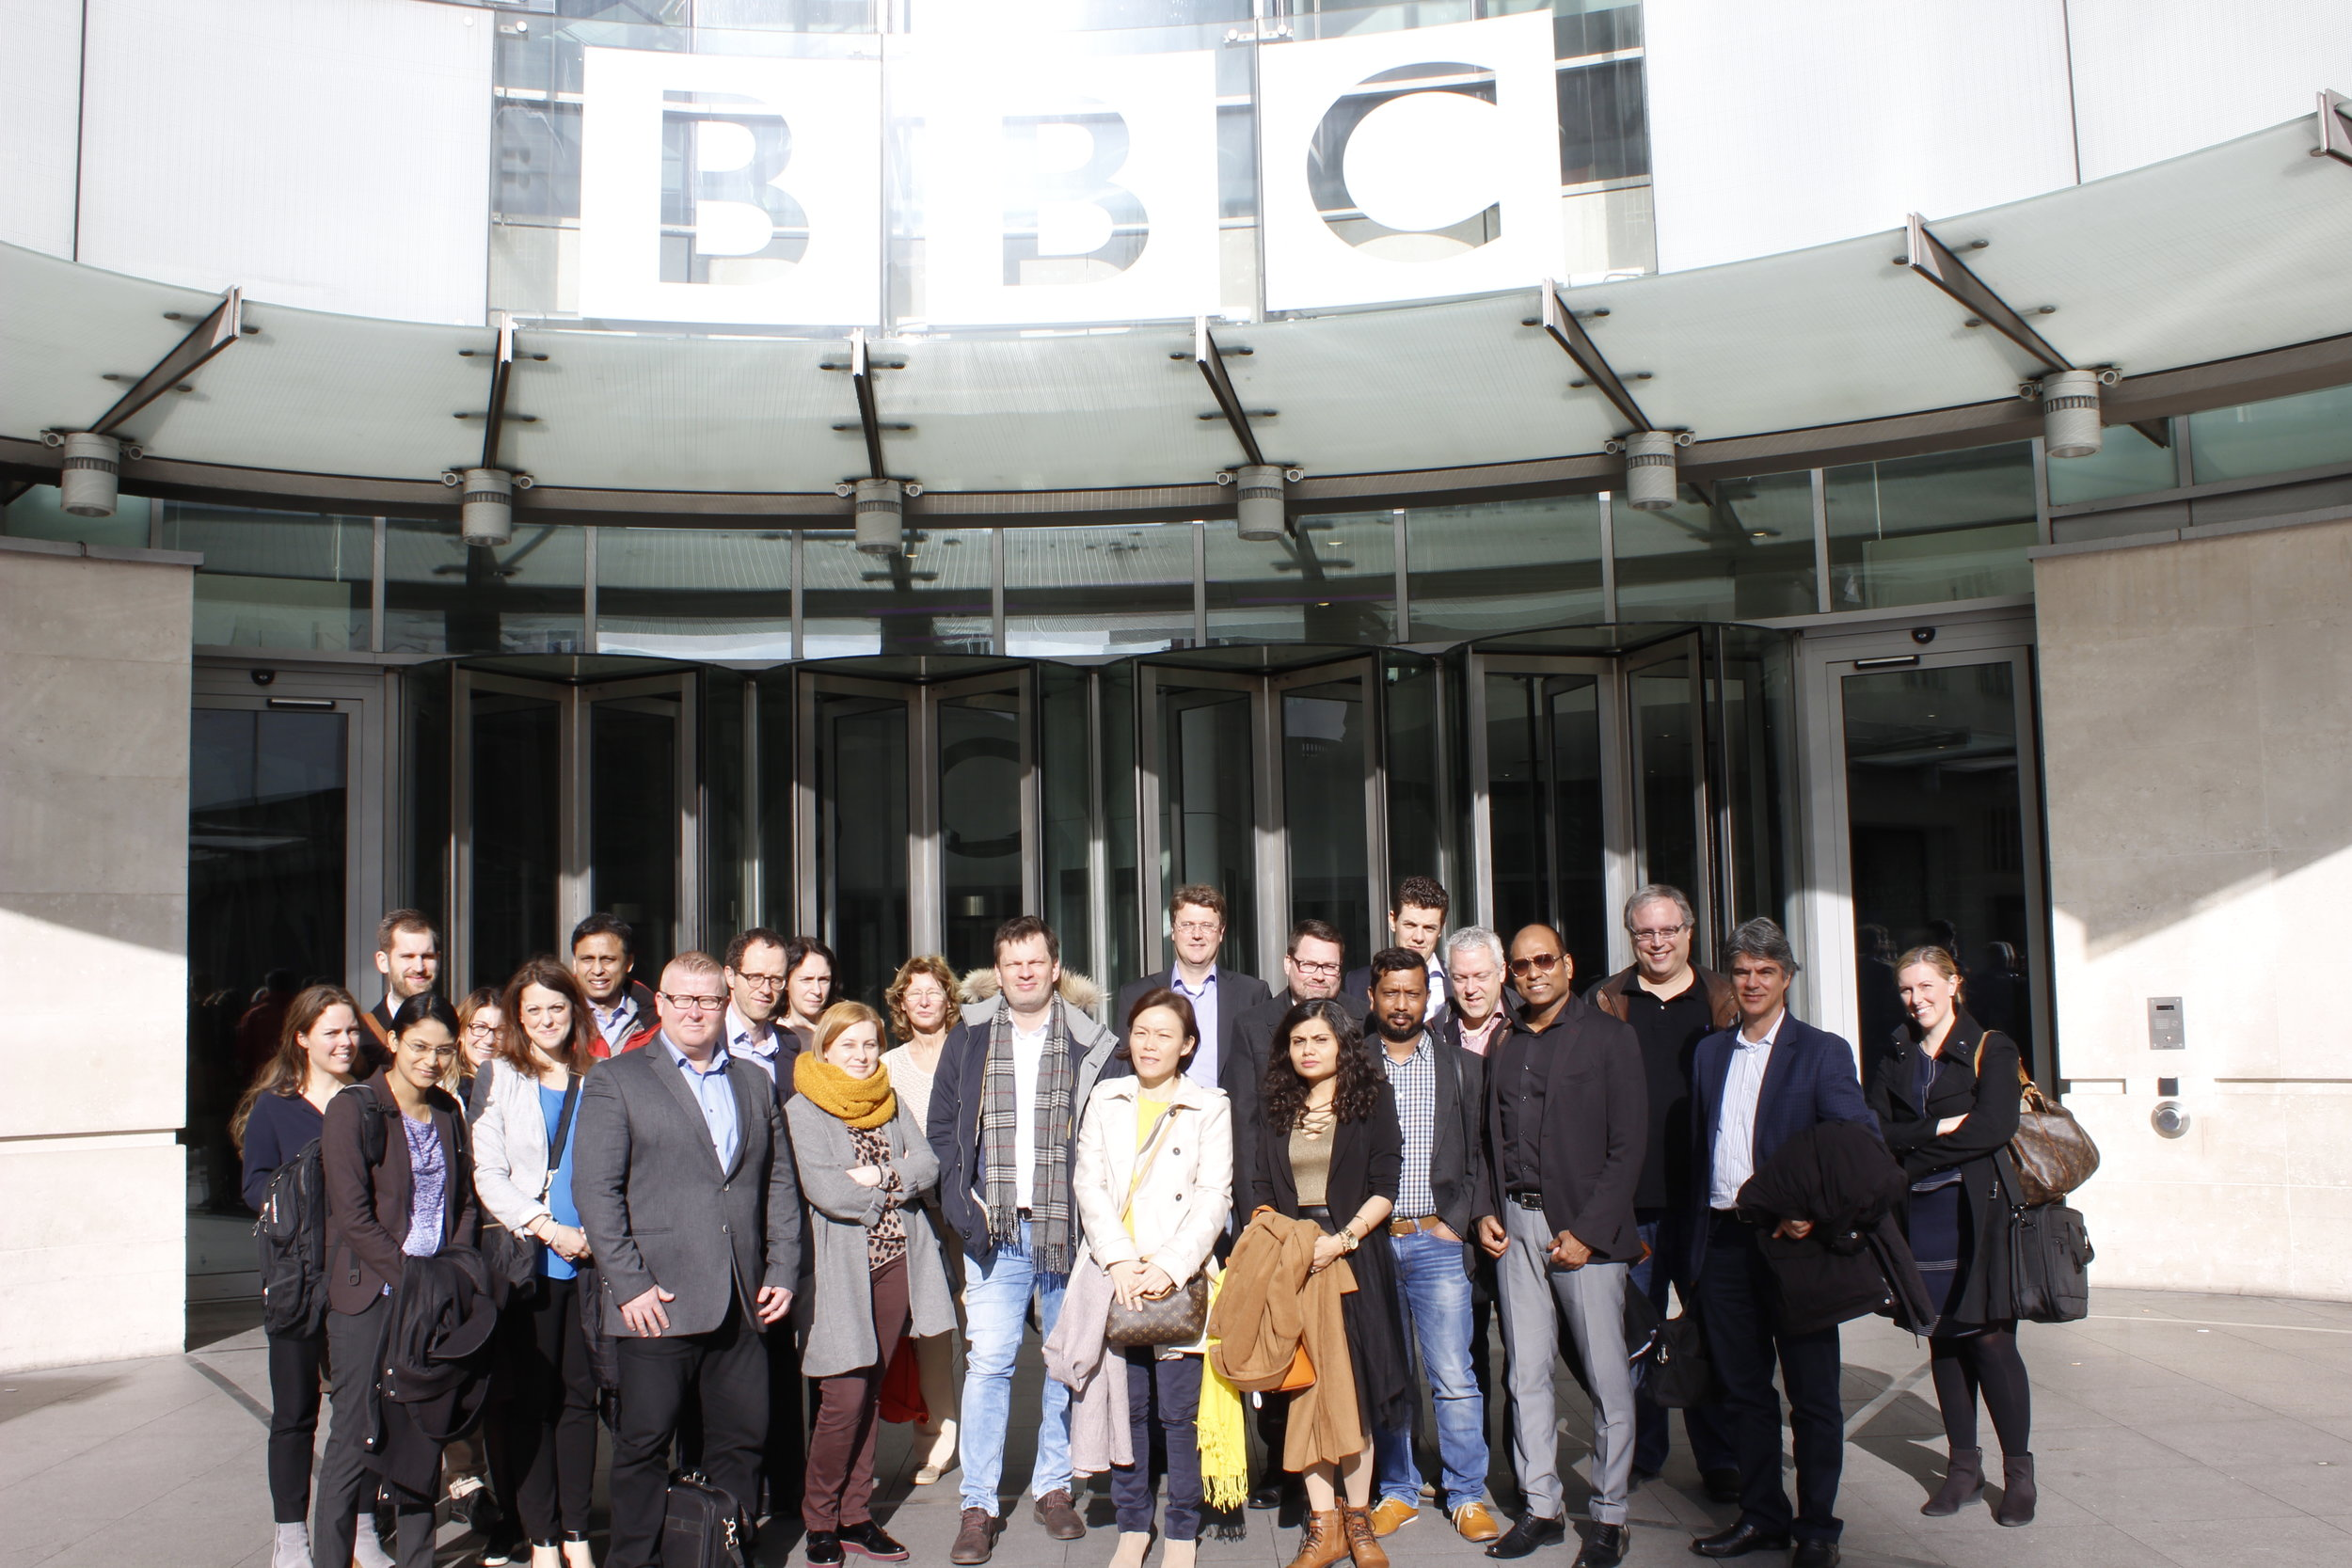 BBC group shot in front of building.jpg